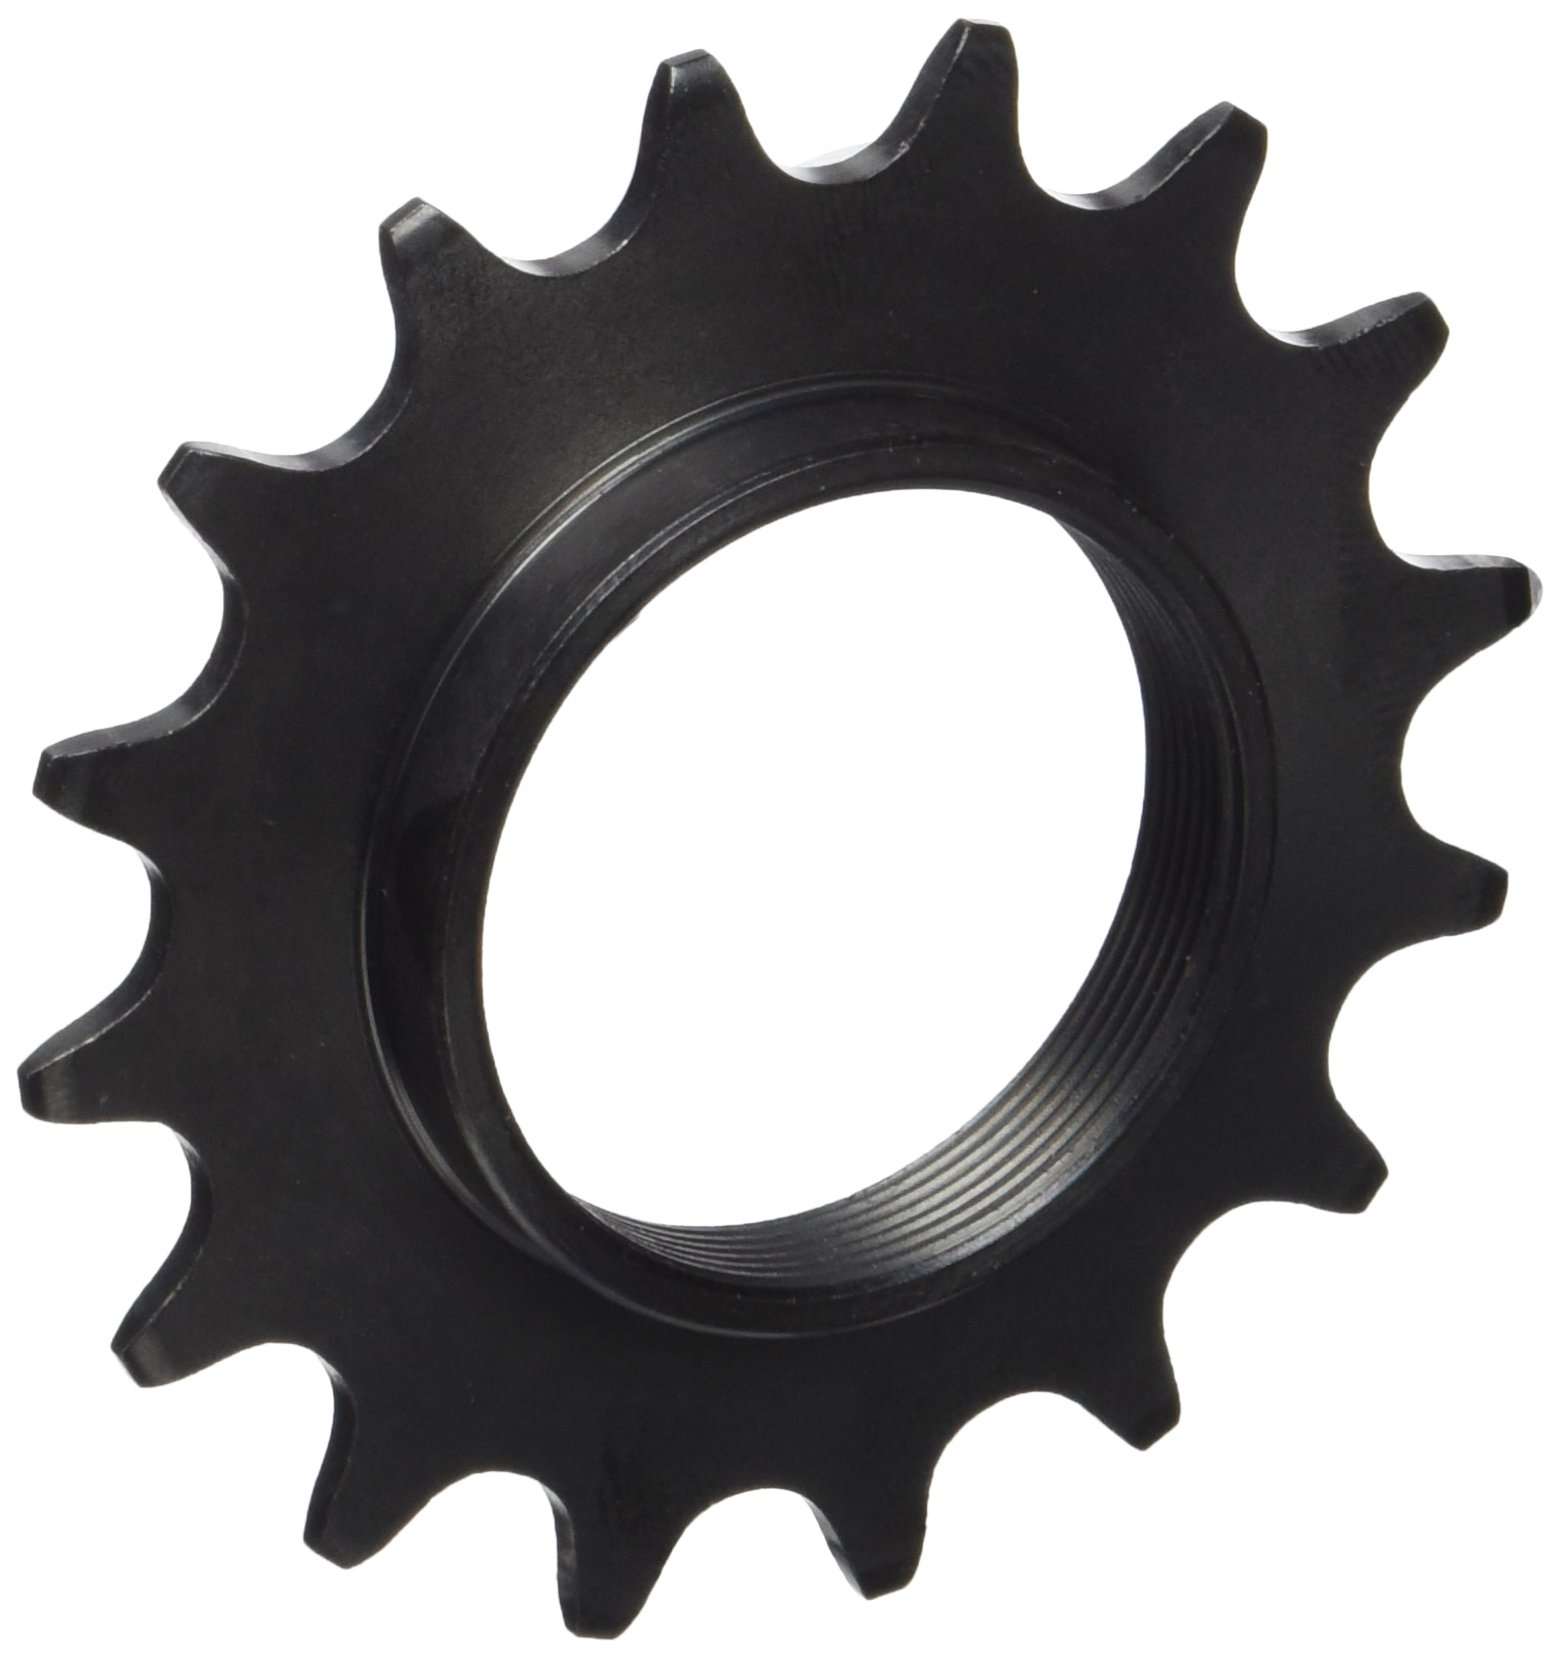 SHIMANO SS-7600 Dura-Ace Track Cog (14T 1/2x3/32-Inch 1 Spee